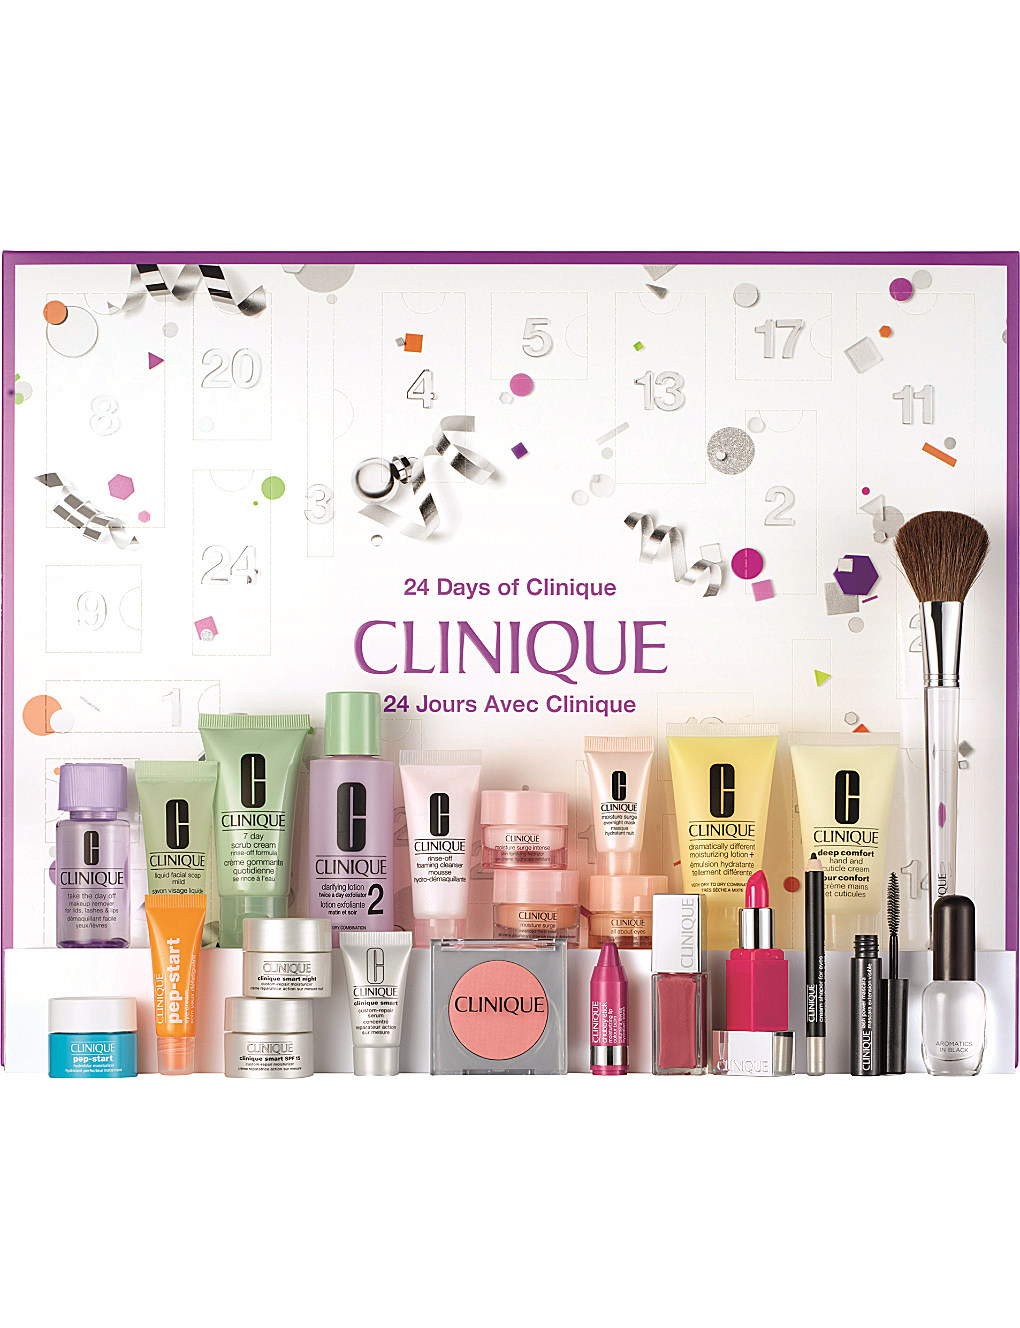 Ana Maddock- 24 Days of Clinique advent calendar